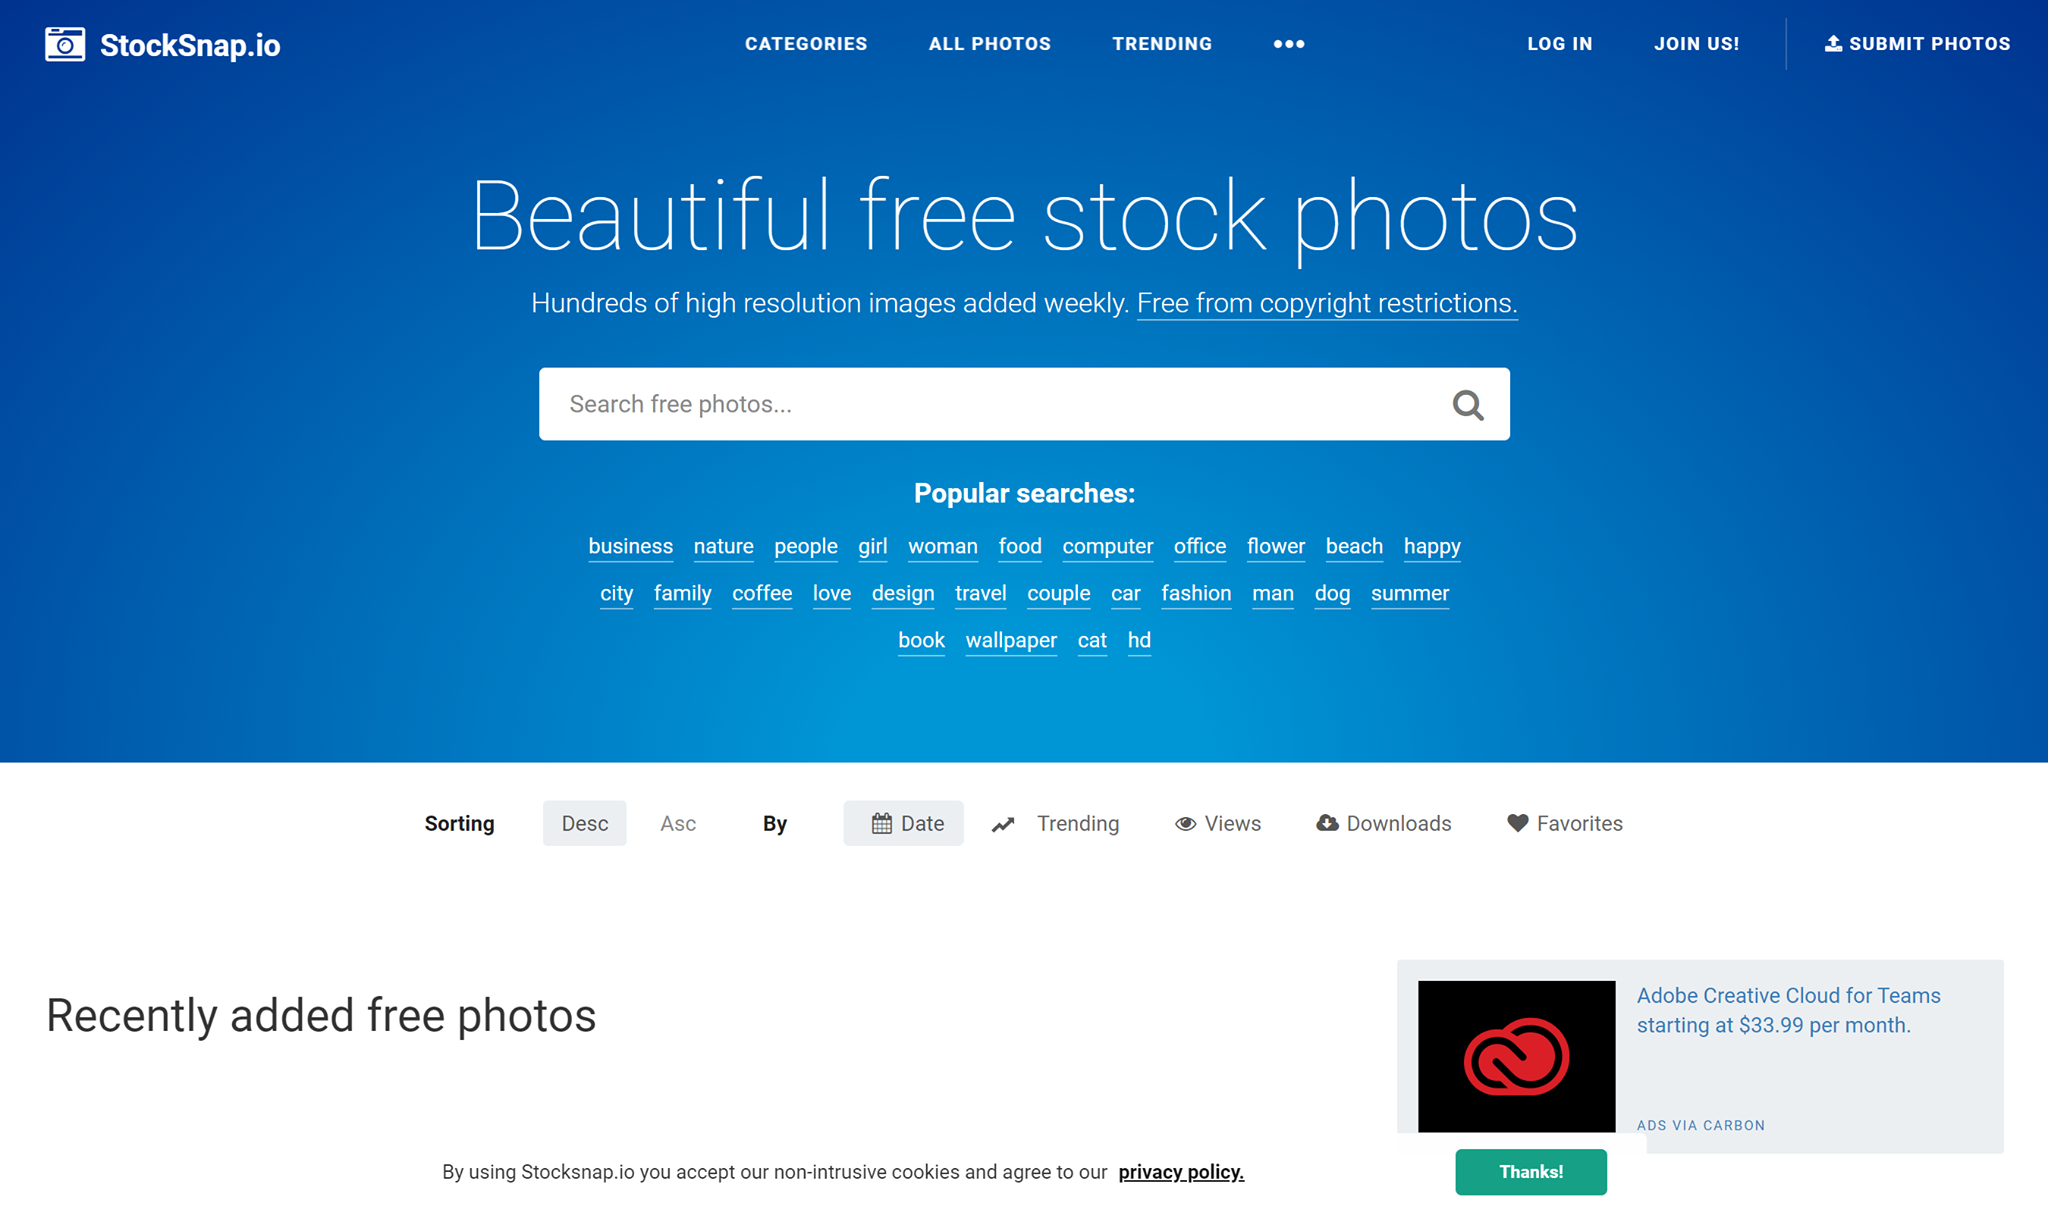 stocksnap website free stock images